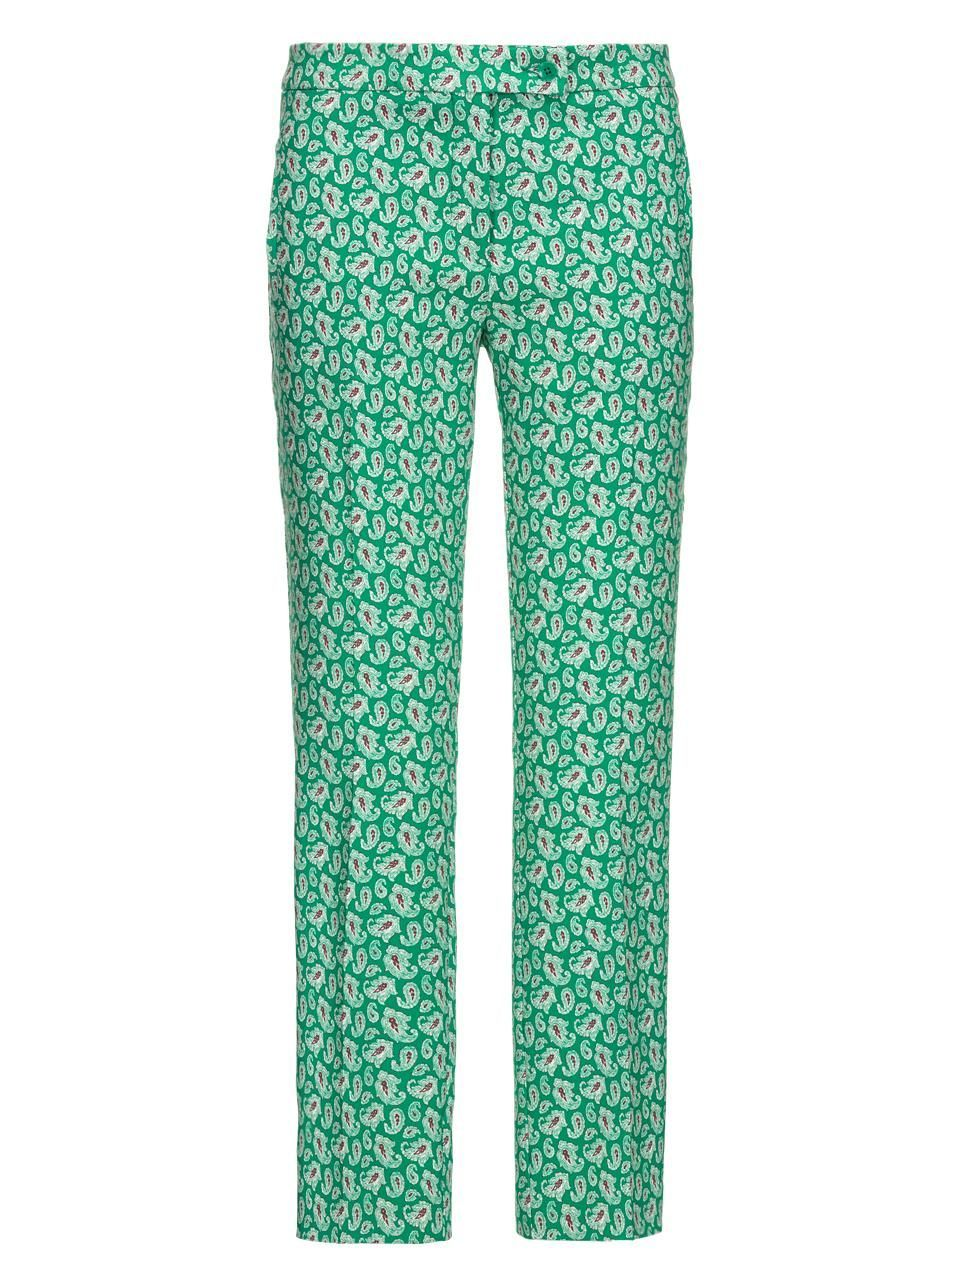 Shop online Etro's new season women's trousers on the